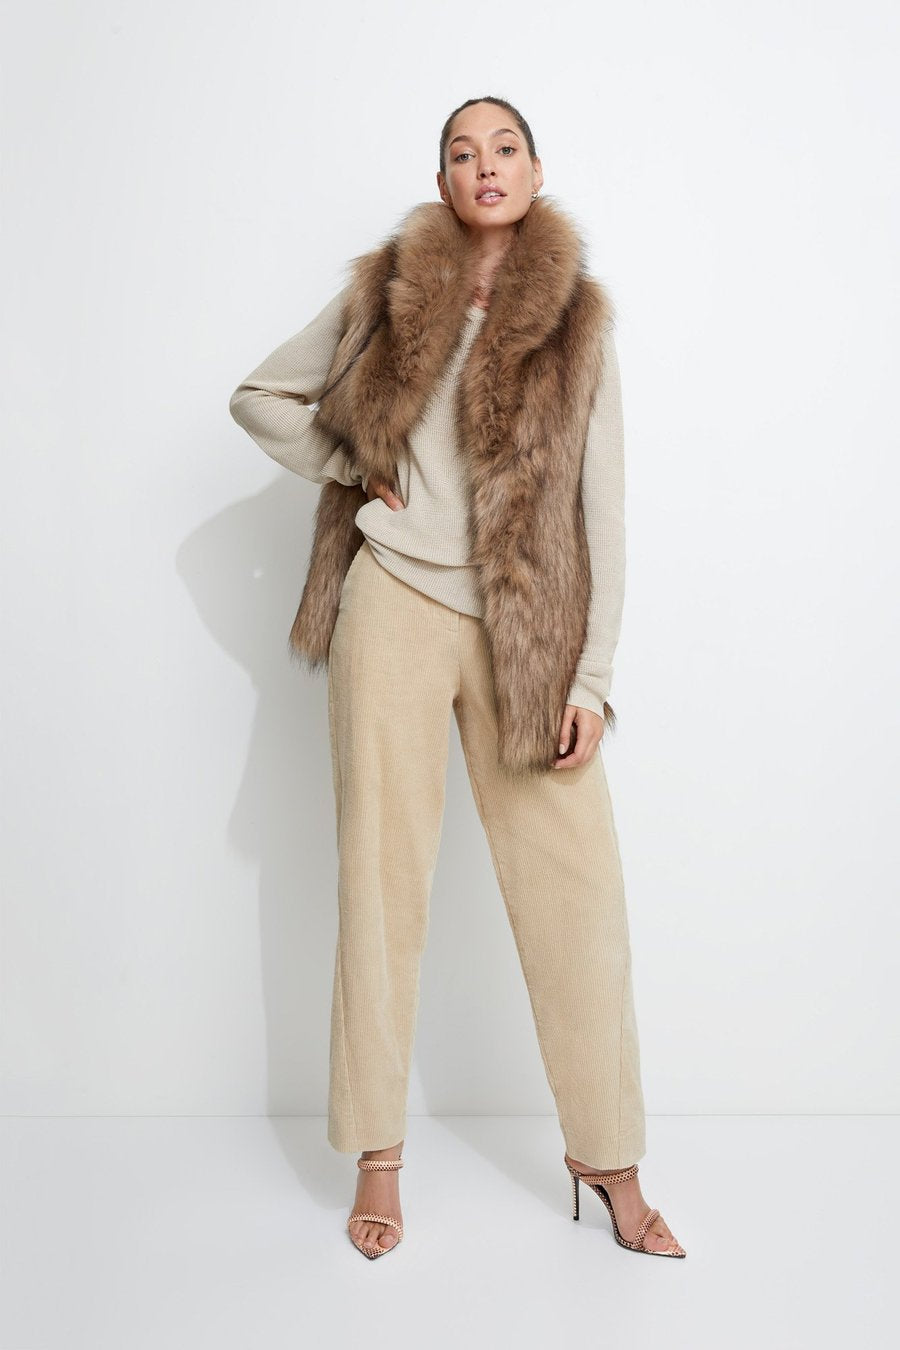 Unreal Fur Fascination Vest in Mocha